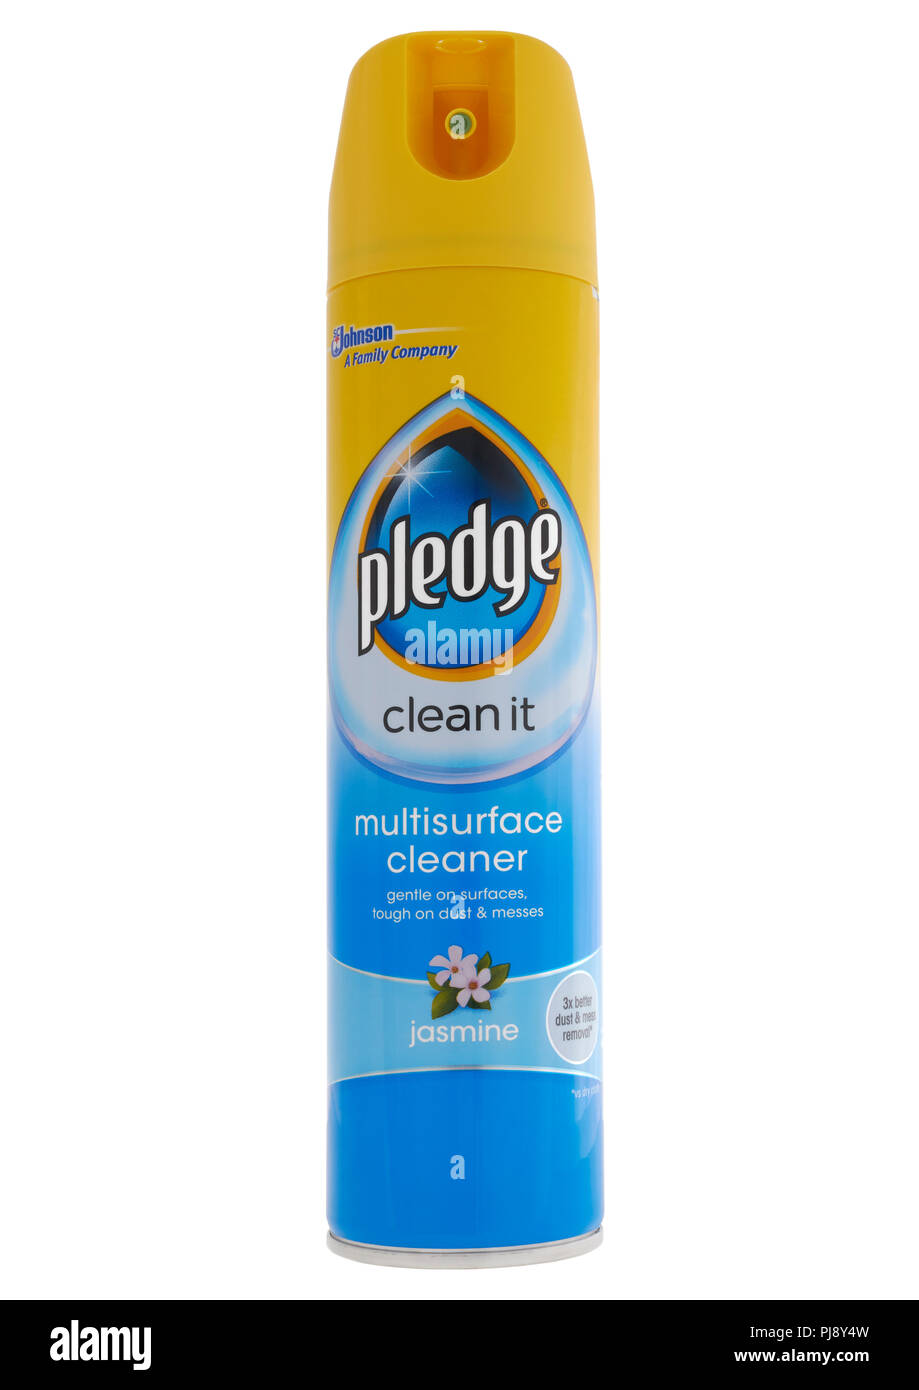 Can of Johnson Pledge multisurface cleaner on white background - Stock Image